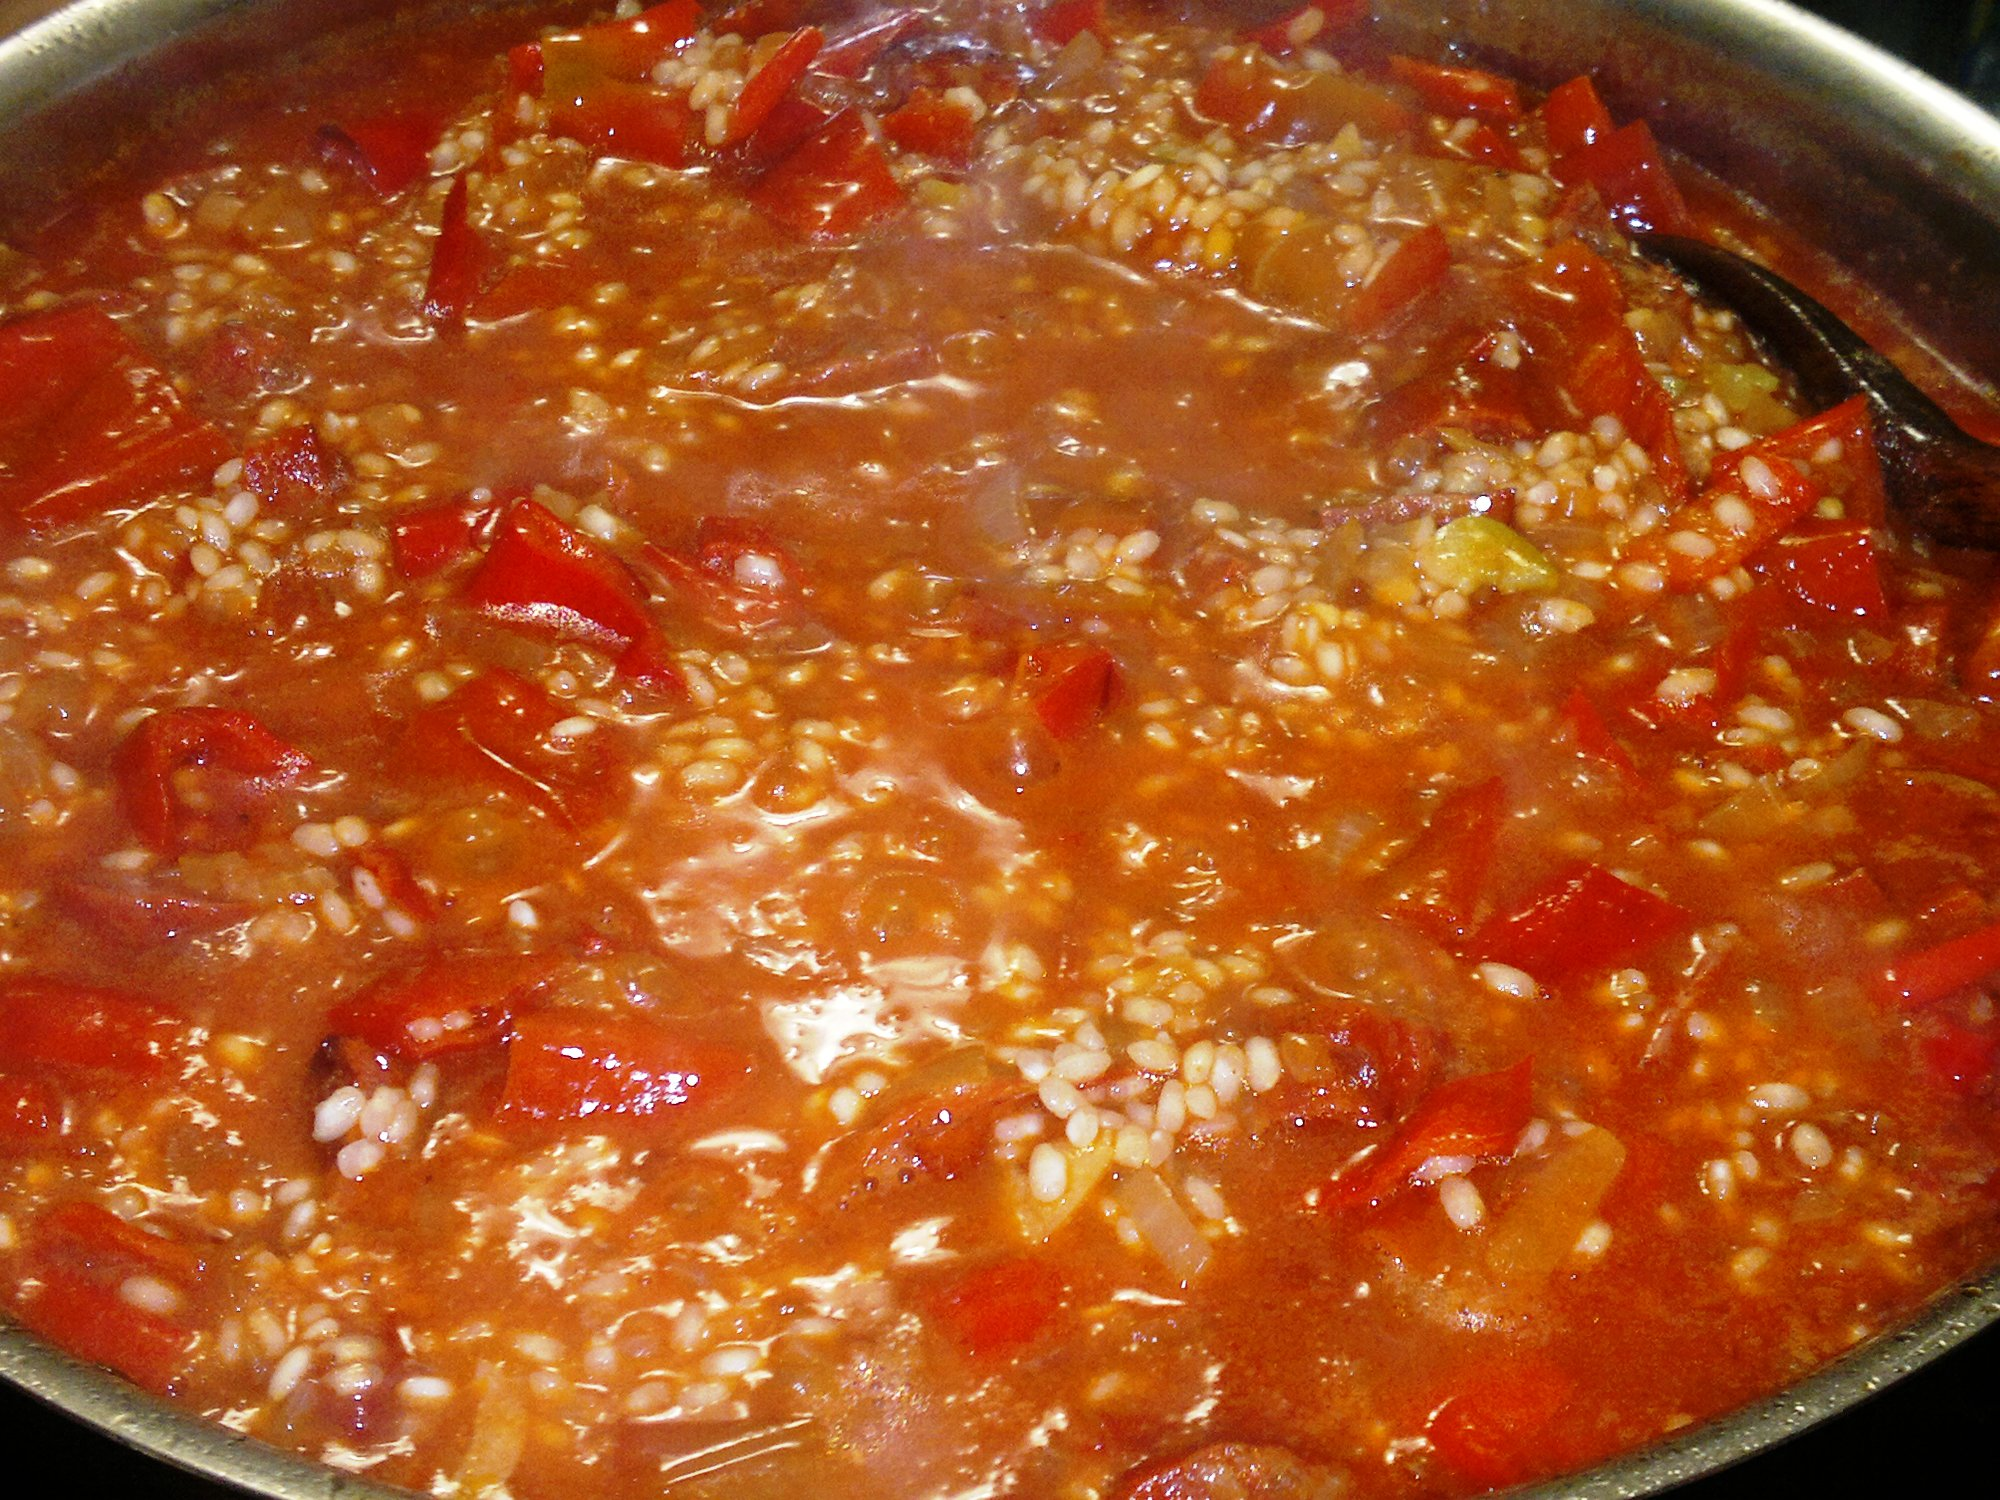 The paella gently bubbling away